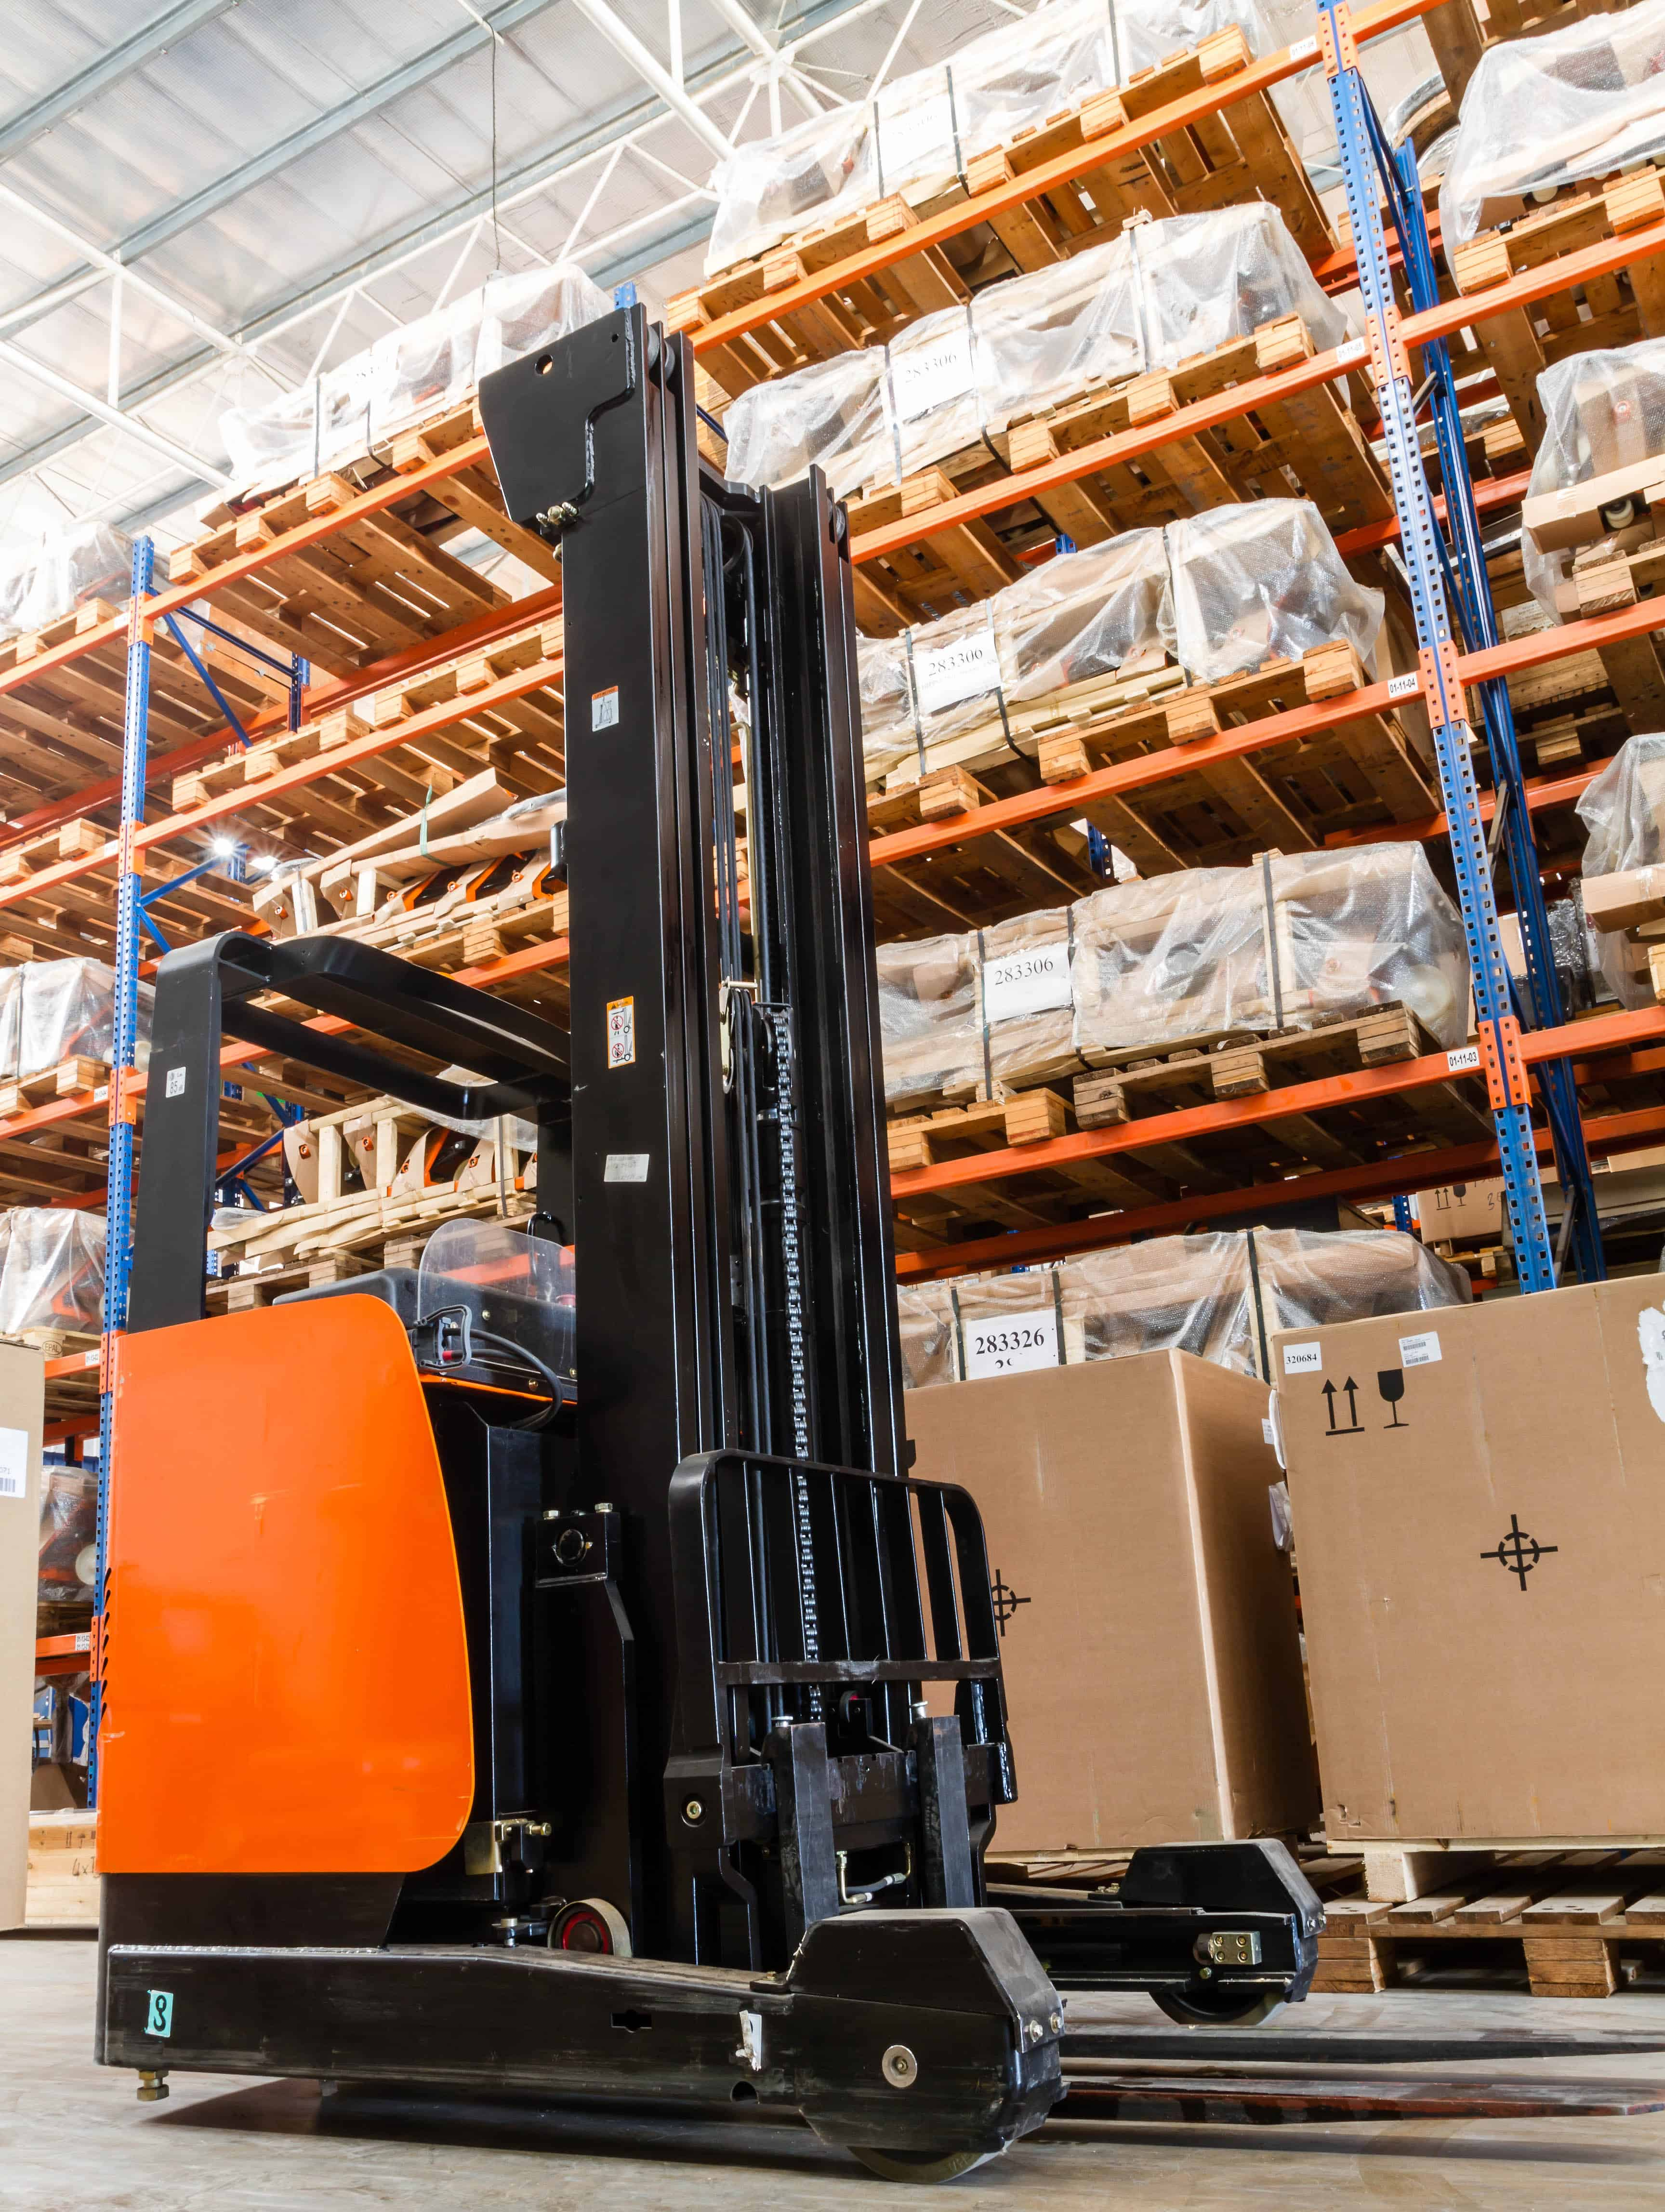 Inventory management ecommerce fulfillment